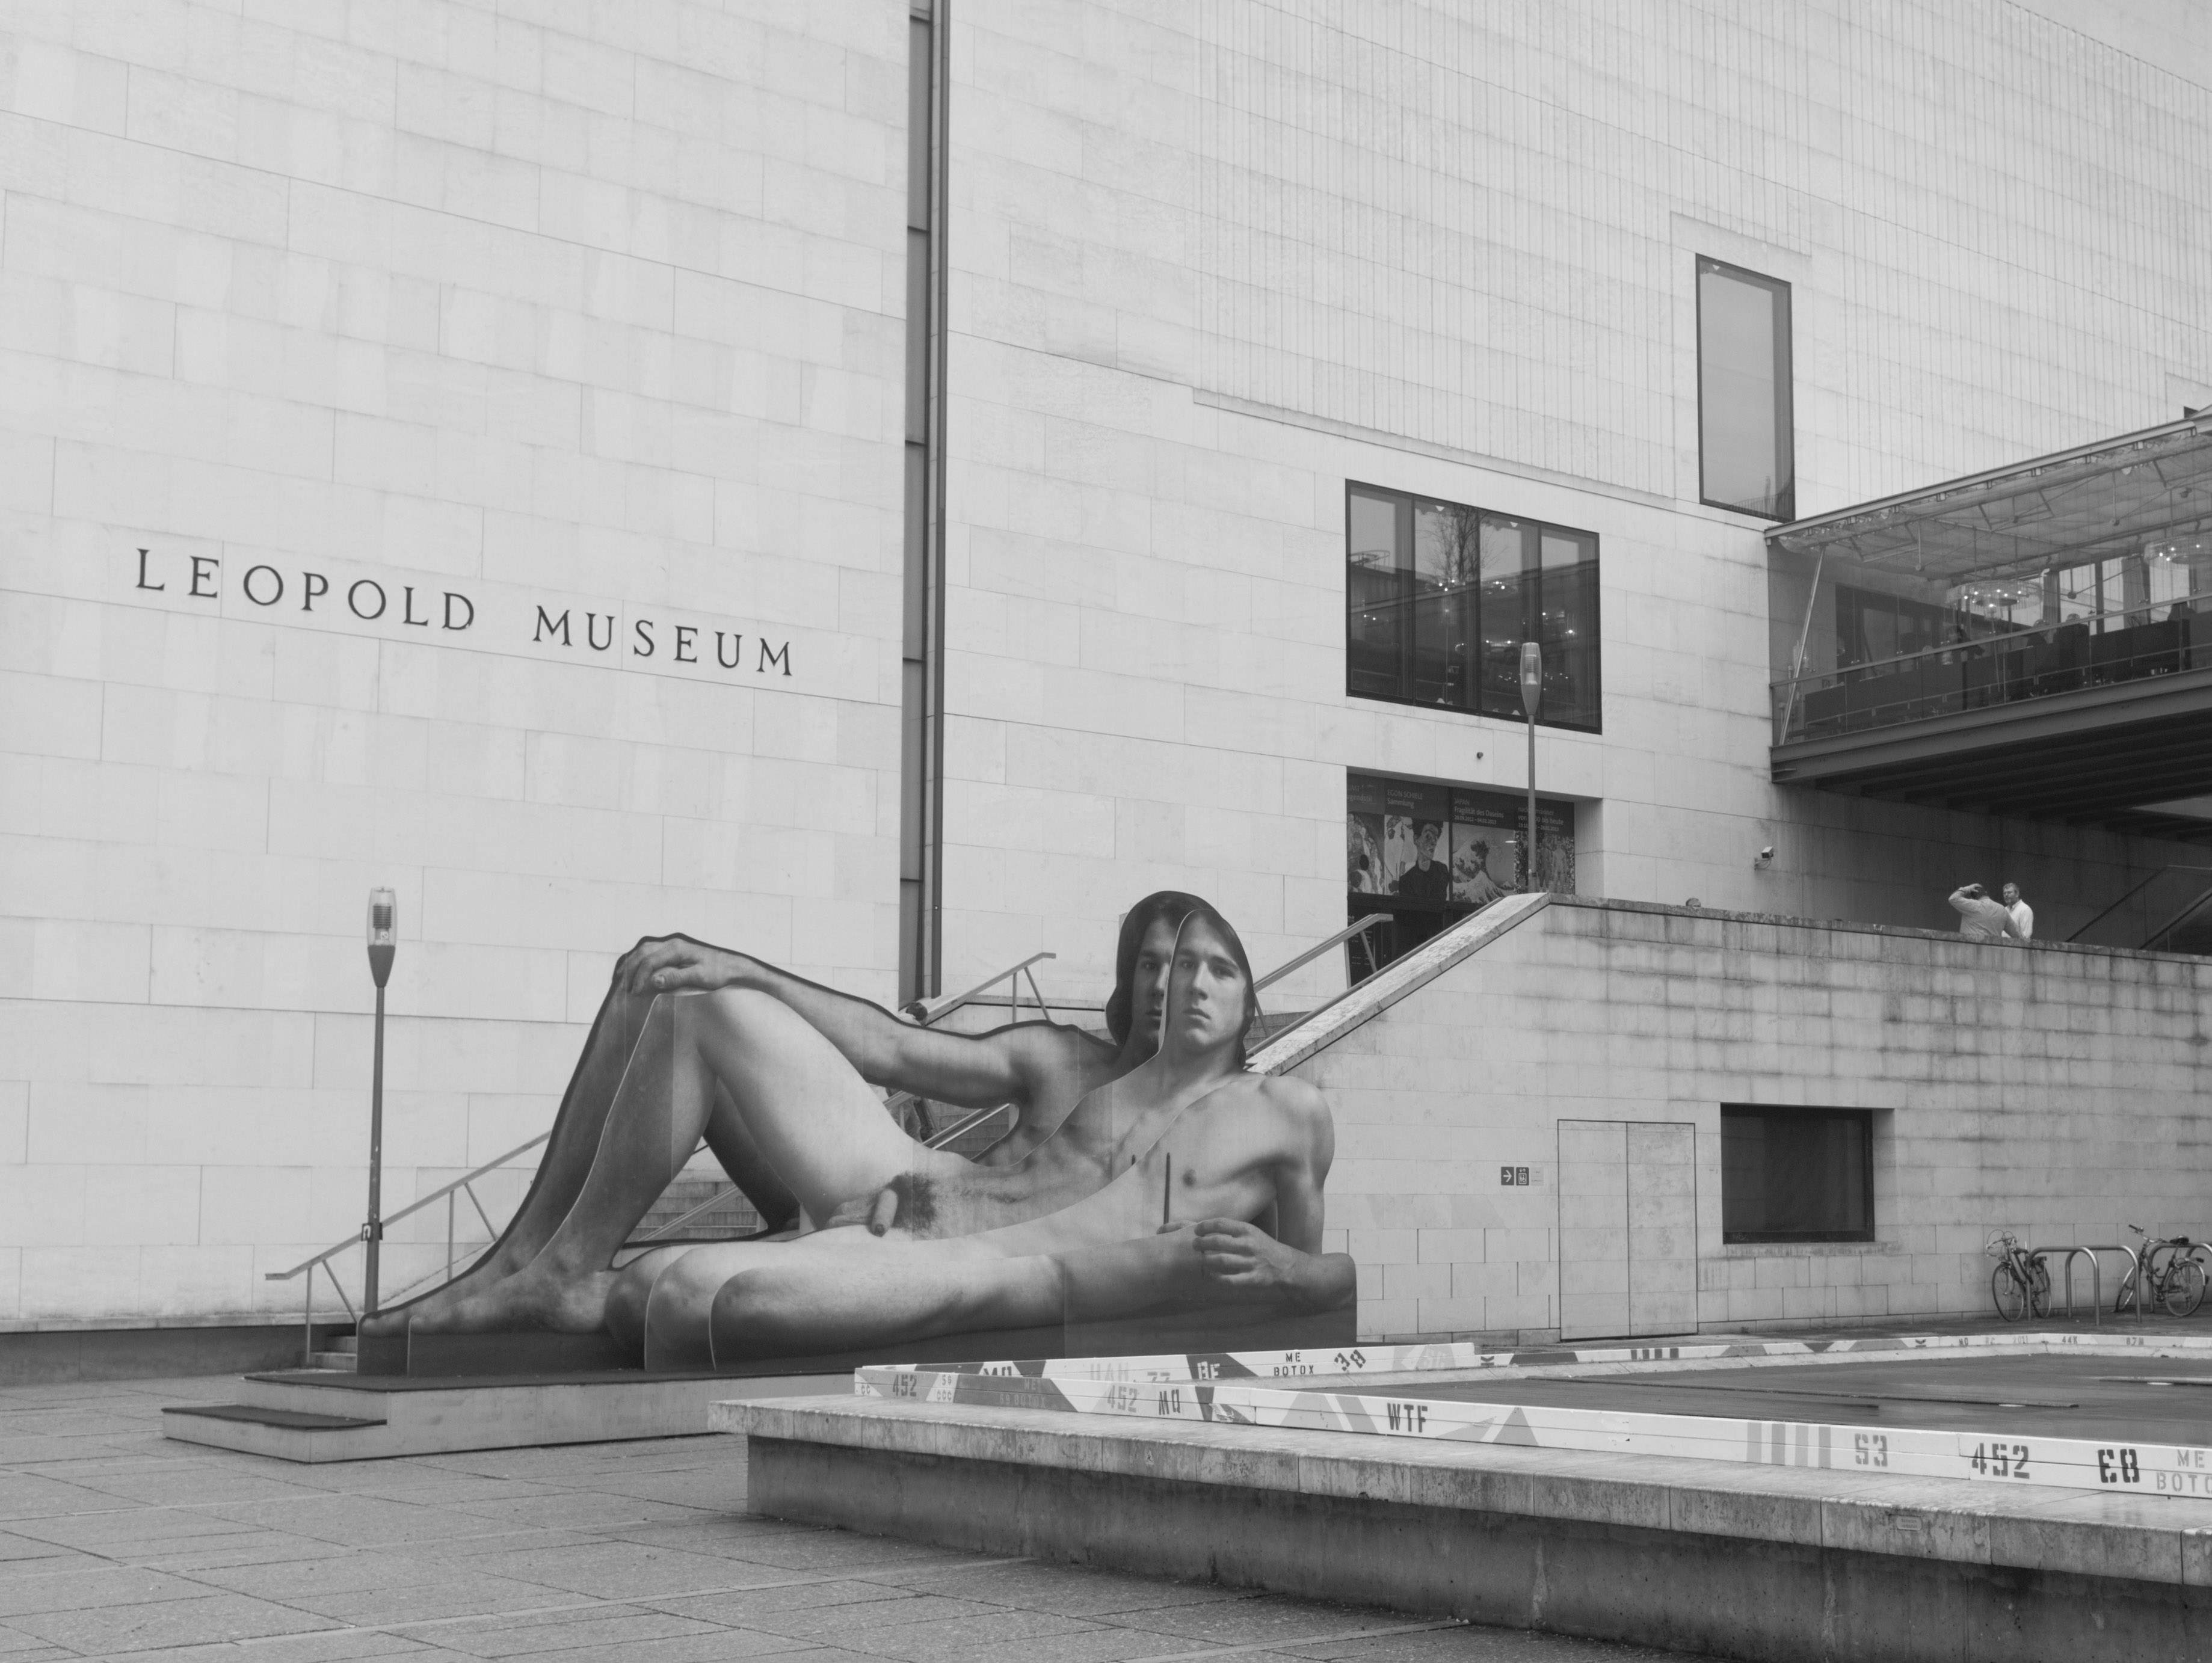 Nude in public at Leopold Museum (Neubau, Austria) with Leica M Monochrom (Leica Summilux-M 35mm f/1.4 ASPH.) by Magnus L Andersson (photography.anderssoneklund.se) at 2012-12-17 11:40:35